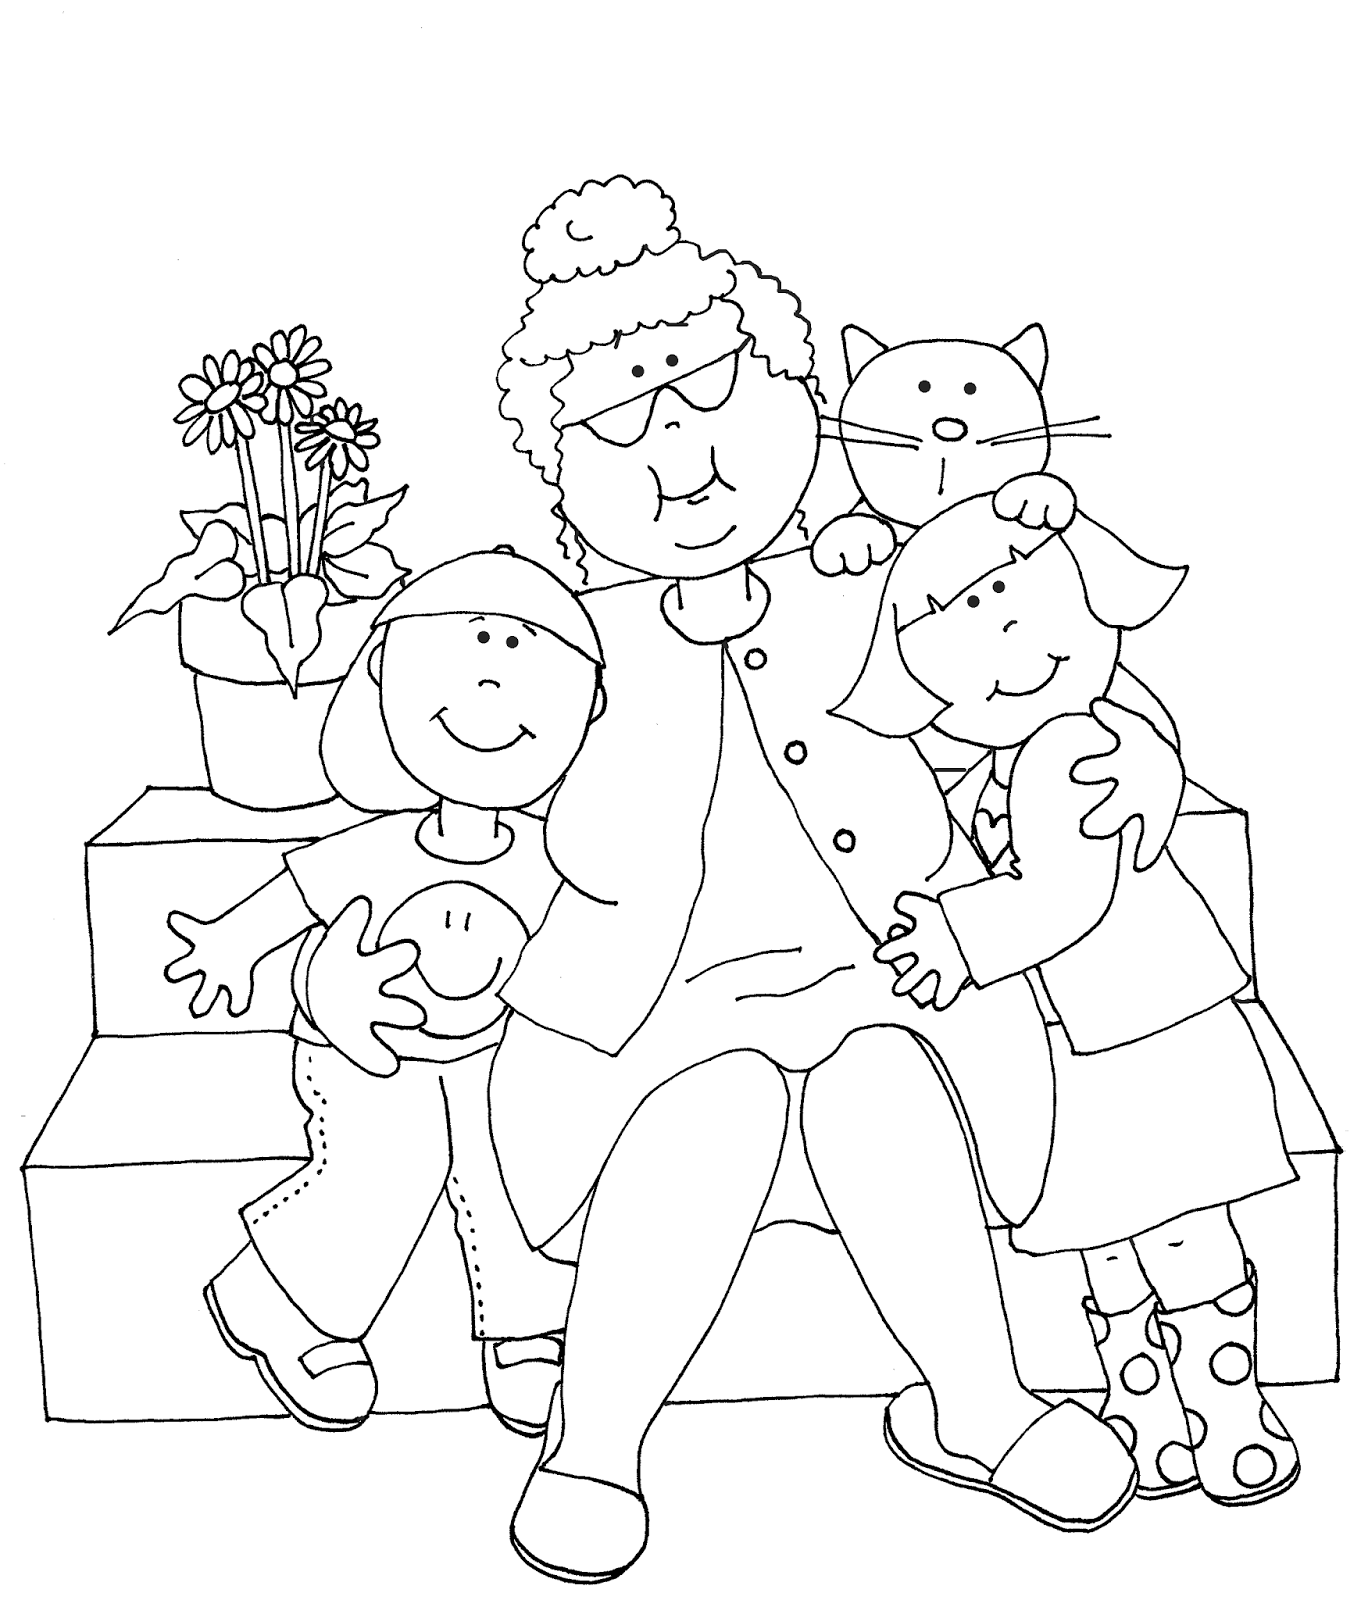 Free Dearie Dolls Digi Stamps As Requested Grammy With Boy And Girl Digi Stamps Coloring Pages Digital Stamps